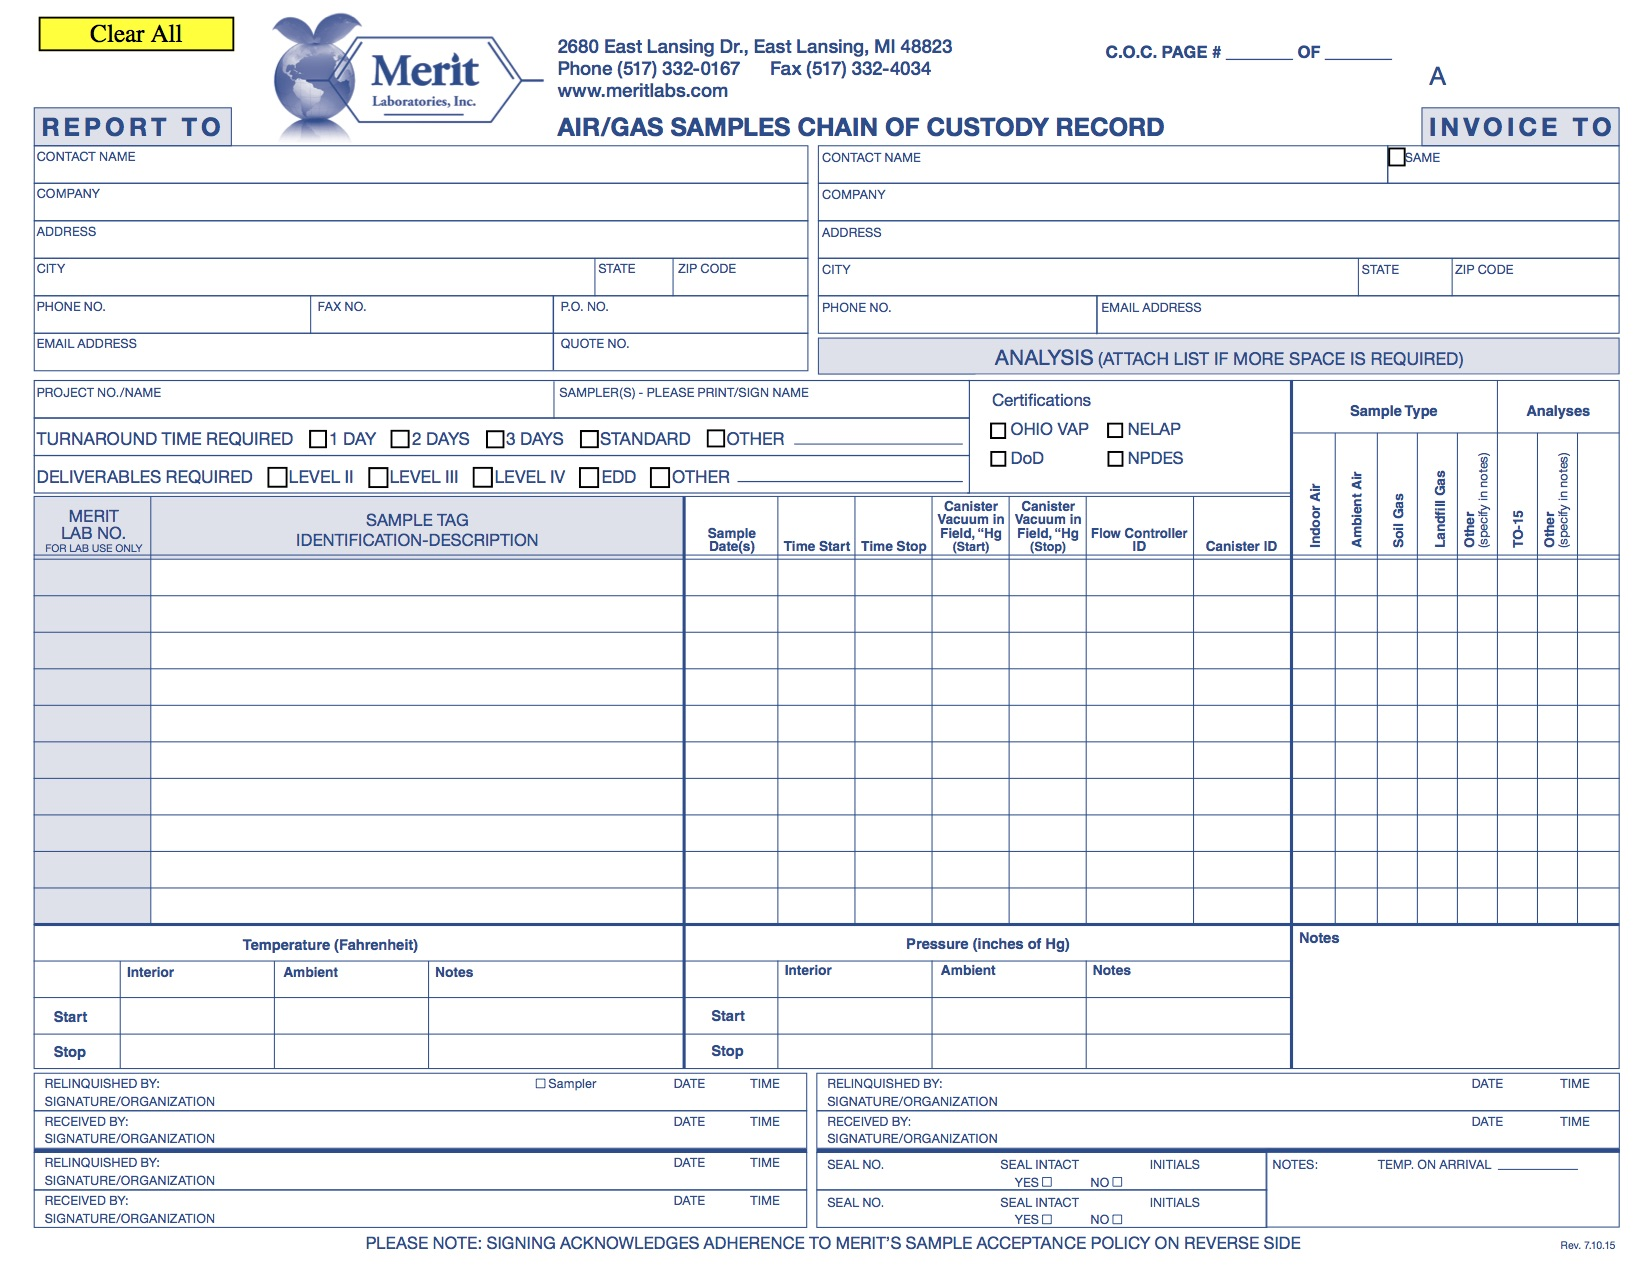 You can download a copy of the Merit COC form for Air samples by clicking the button below.